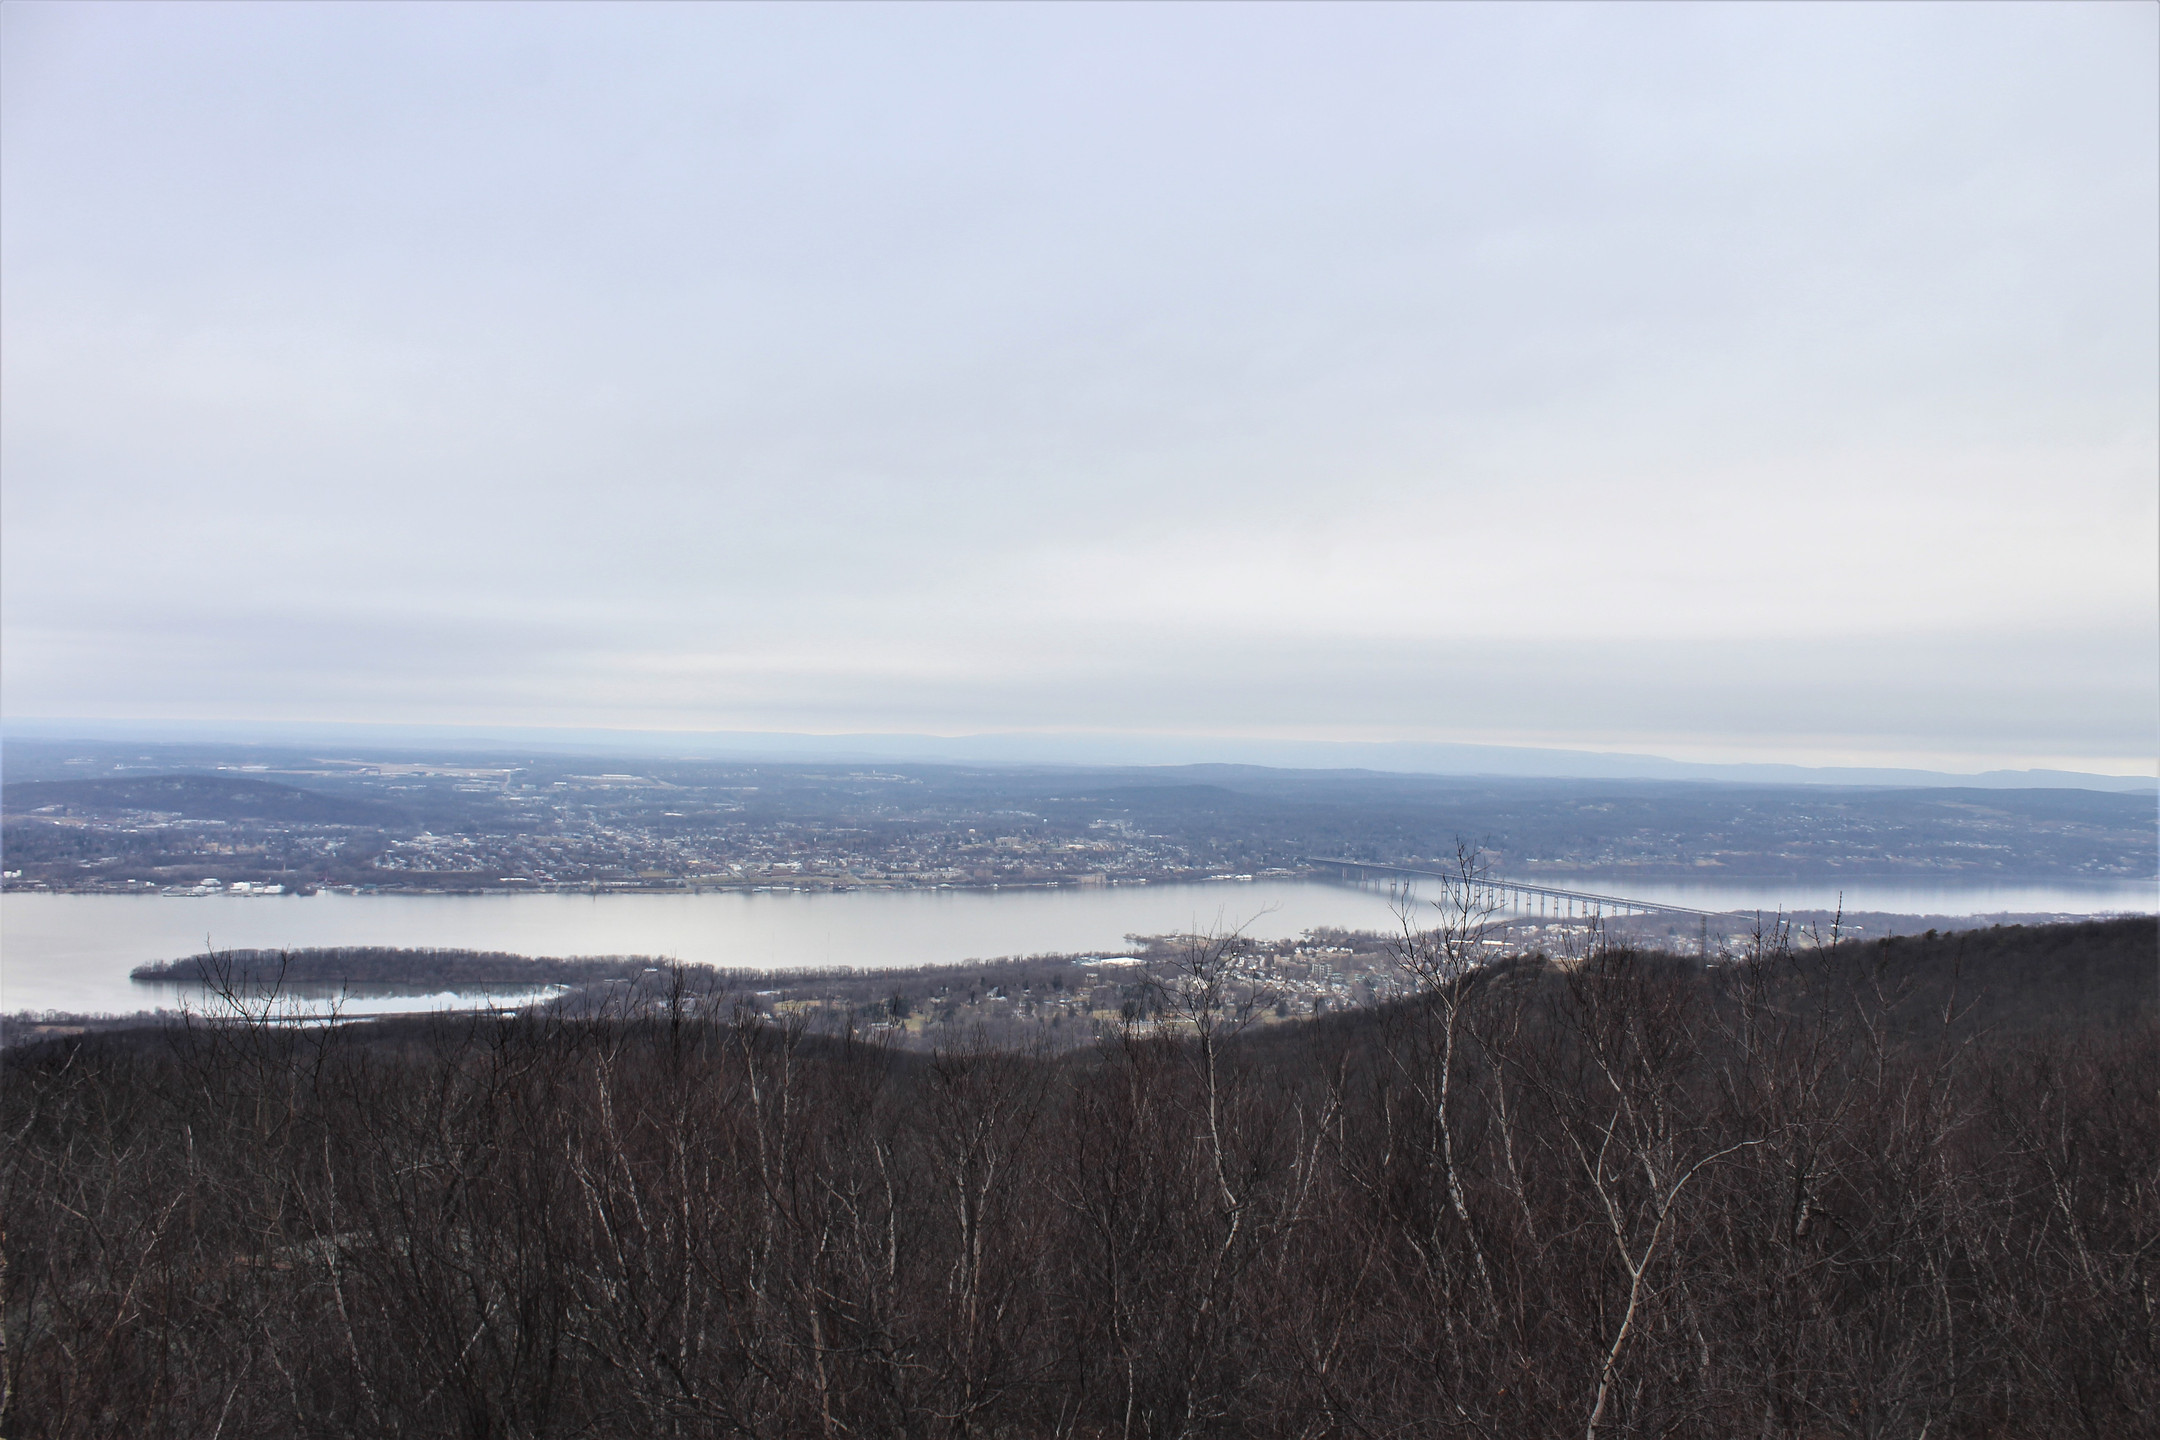 View of Hudson Valley